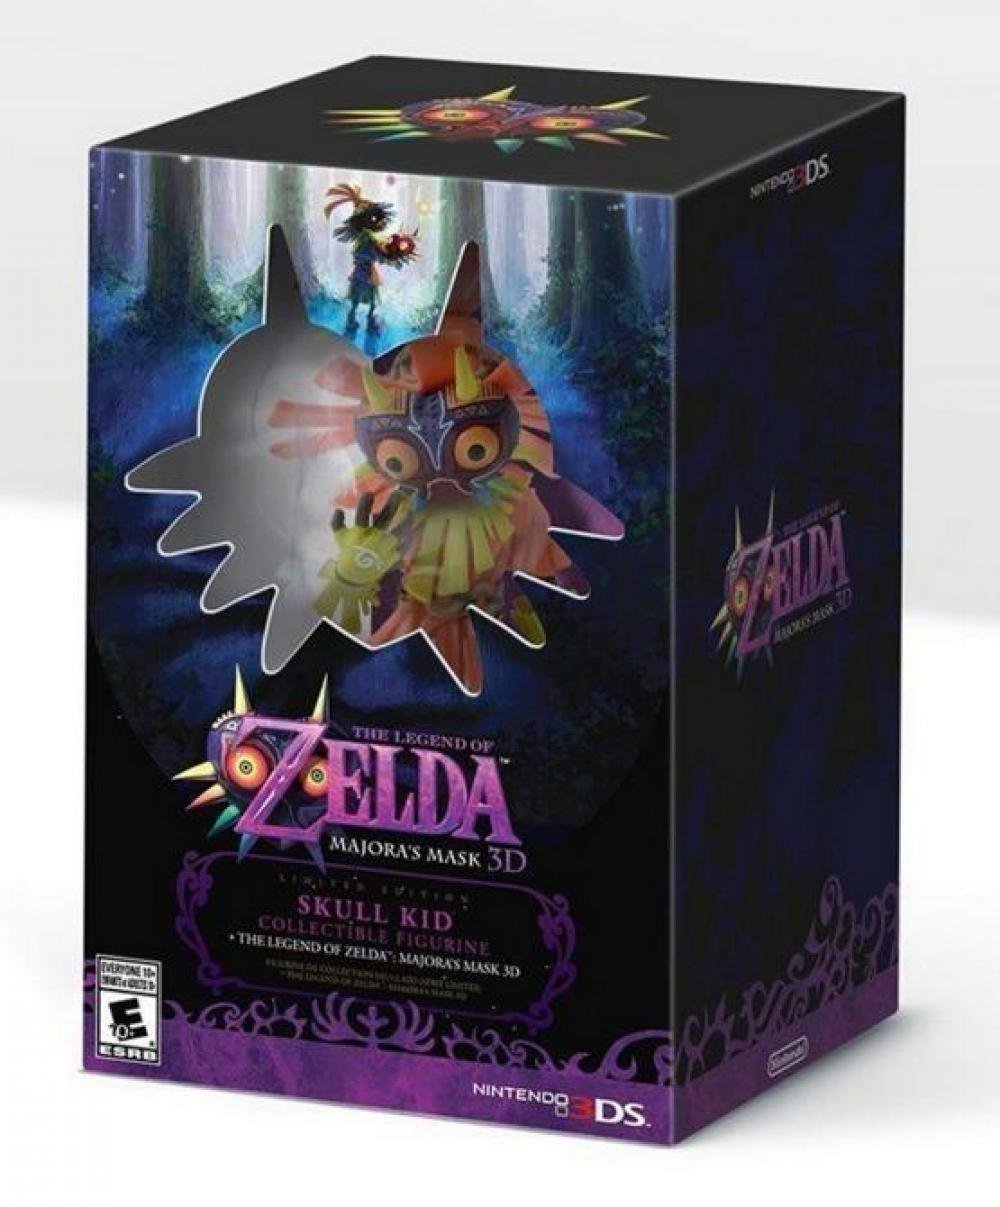 THE LEGEND OF ZELDA - MAJORAS MASK 3D - SKULL KID FIGURE - LIMITED EDITION: Amazon.es: Juguetes y juegos